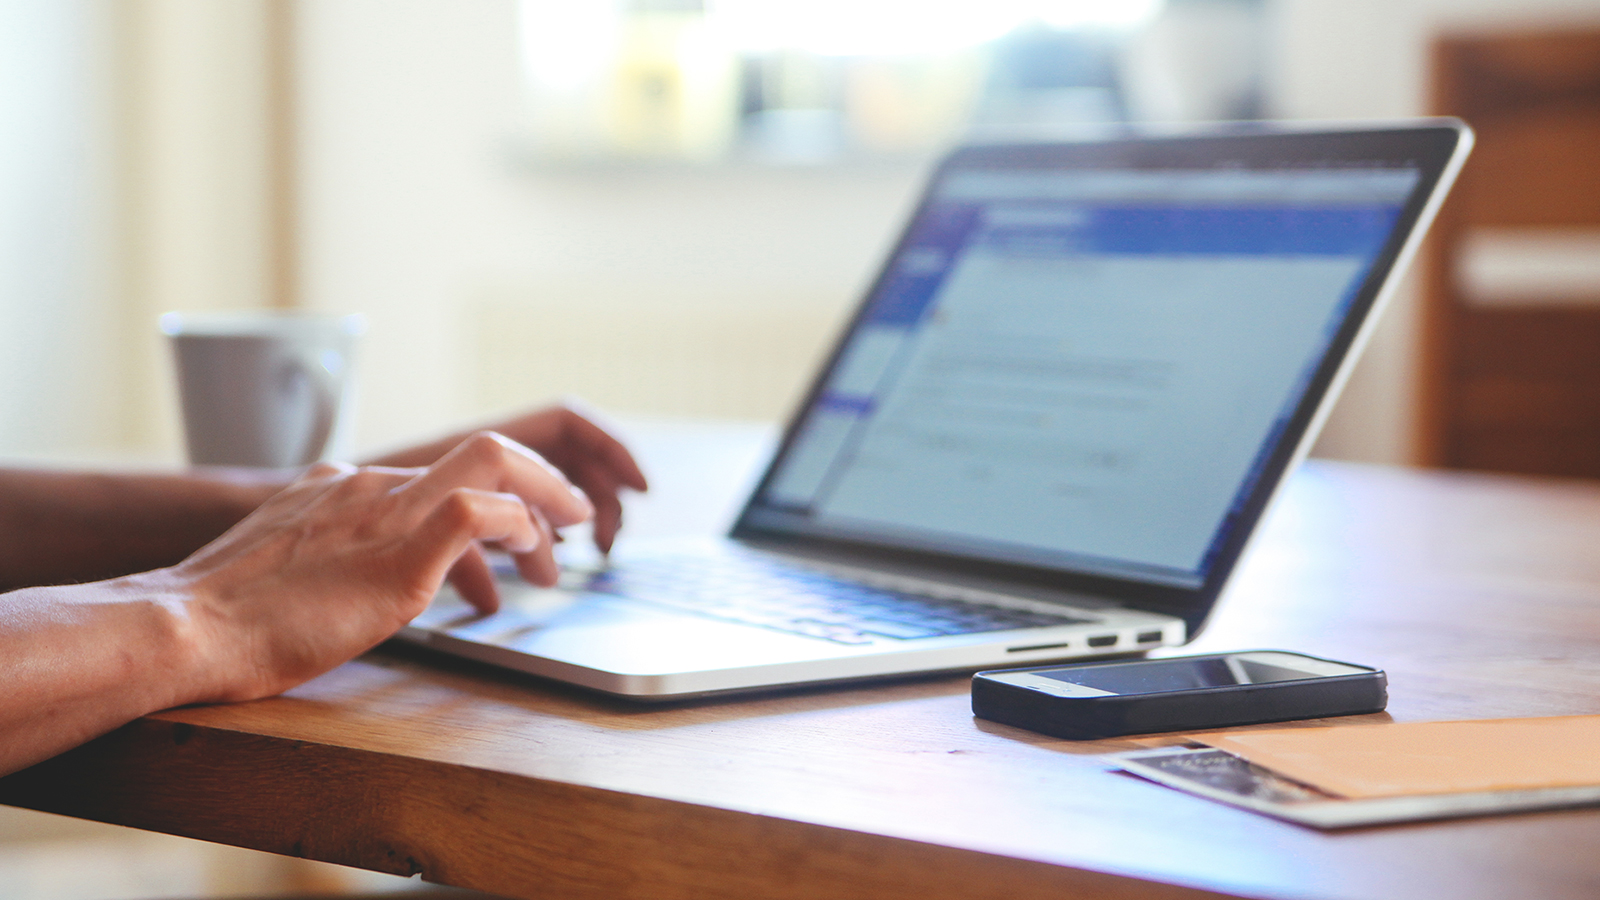 Person at table using a laptop with a smart phone, papers and coffee cup nearby.